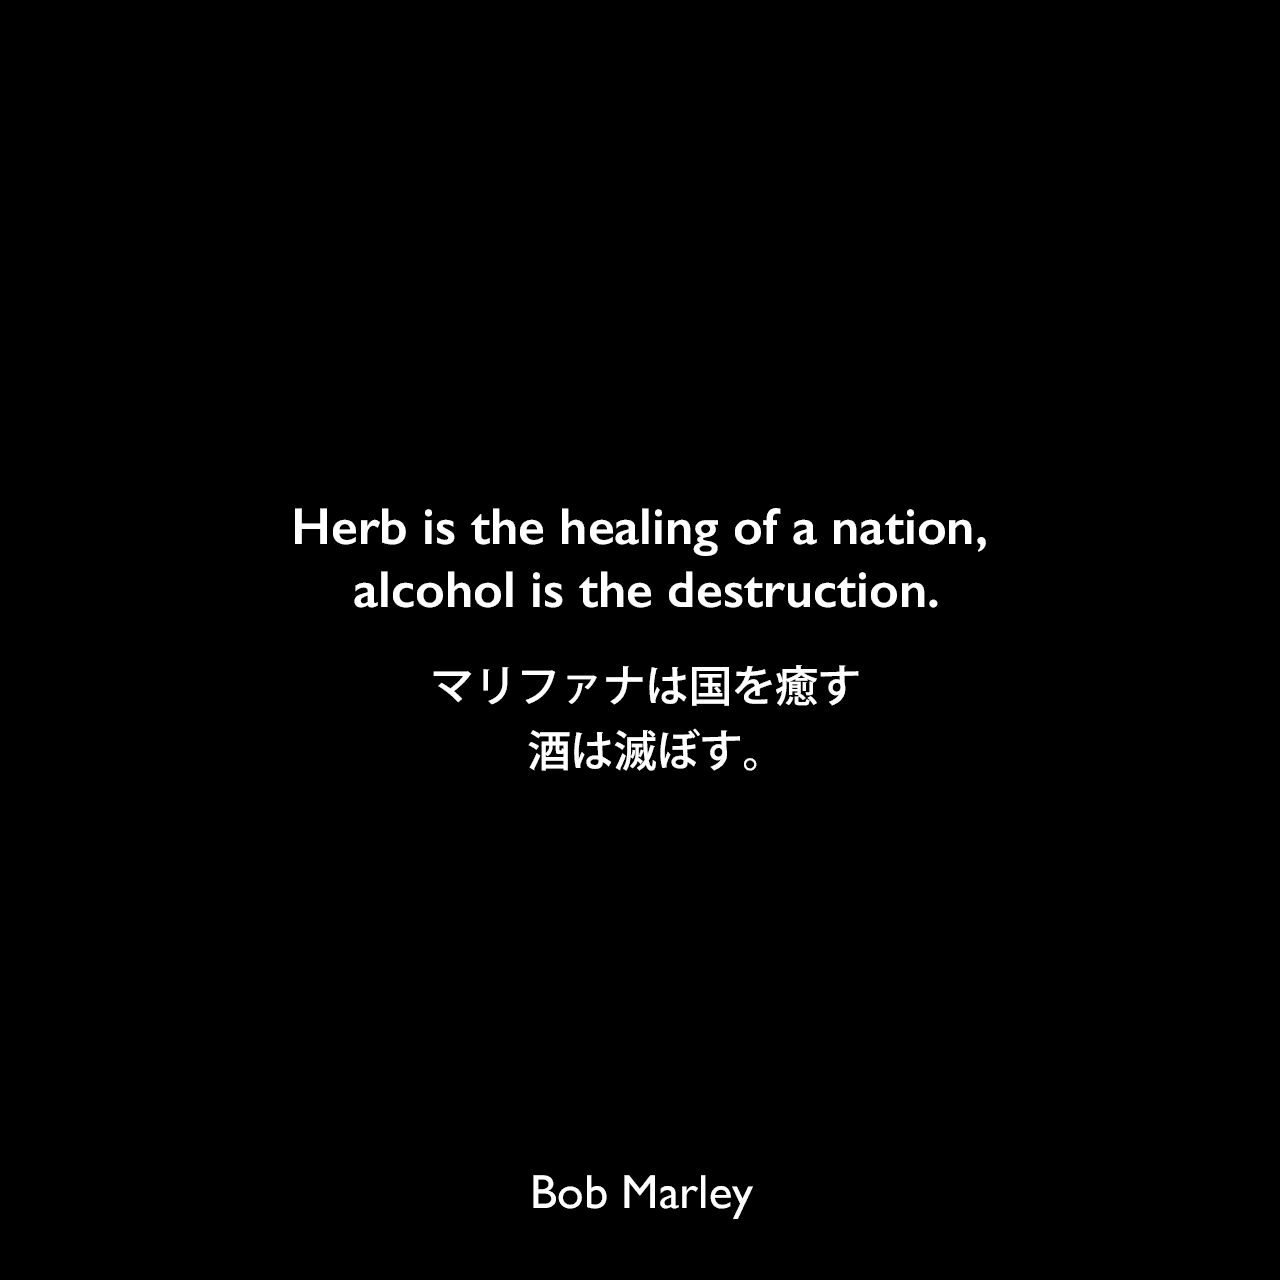 Herb is the healing of a nation, alcohol is the destruction.マリファナは国を癒す、酒は滅ぼす。Bob Marley